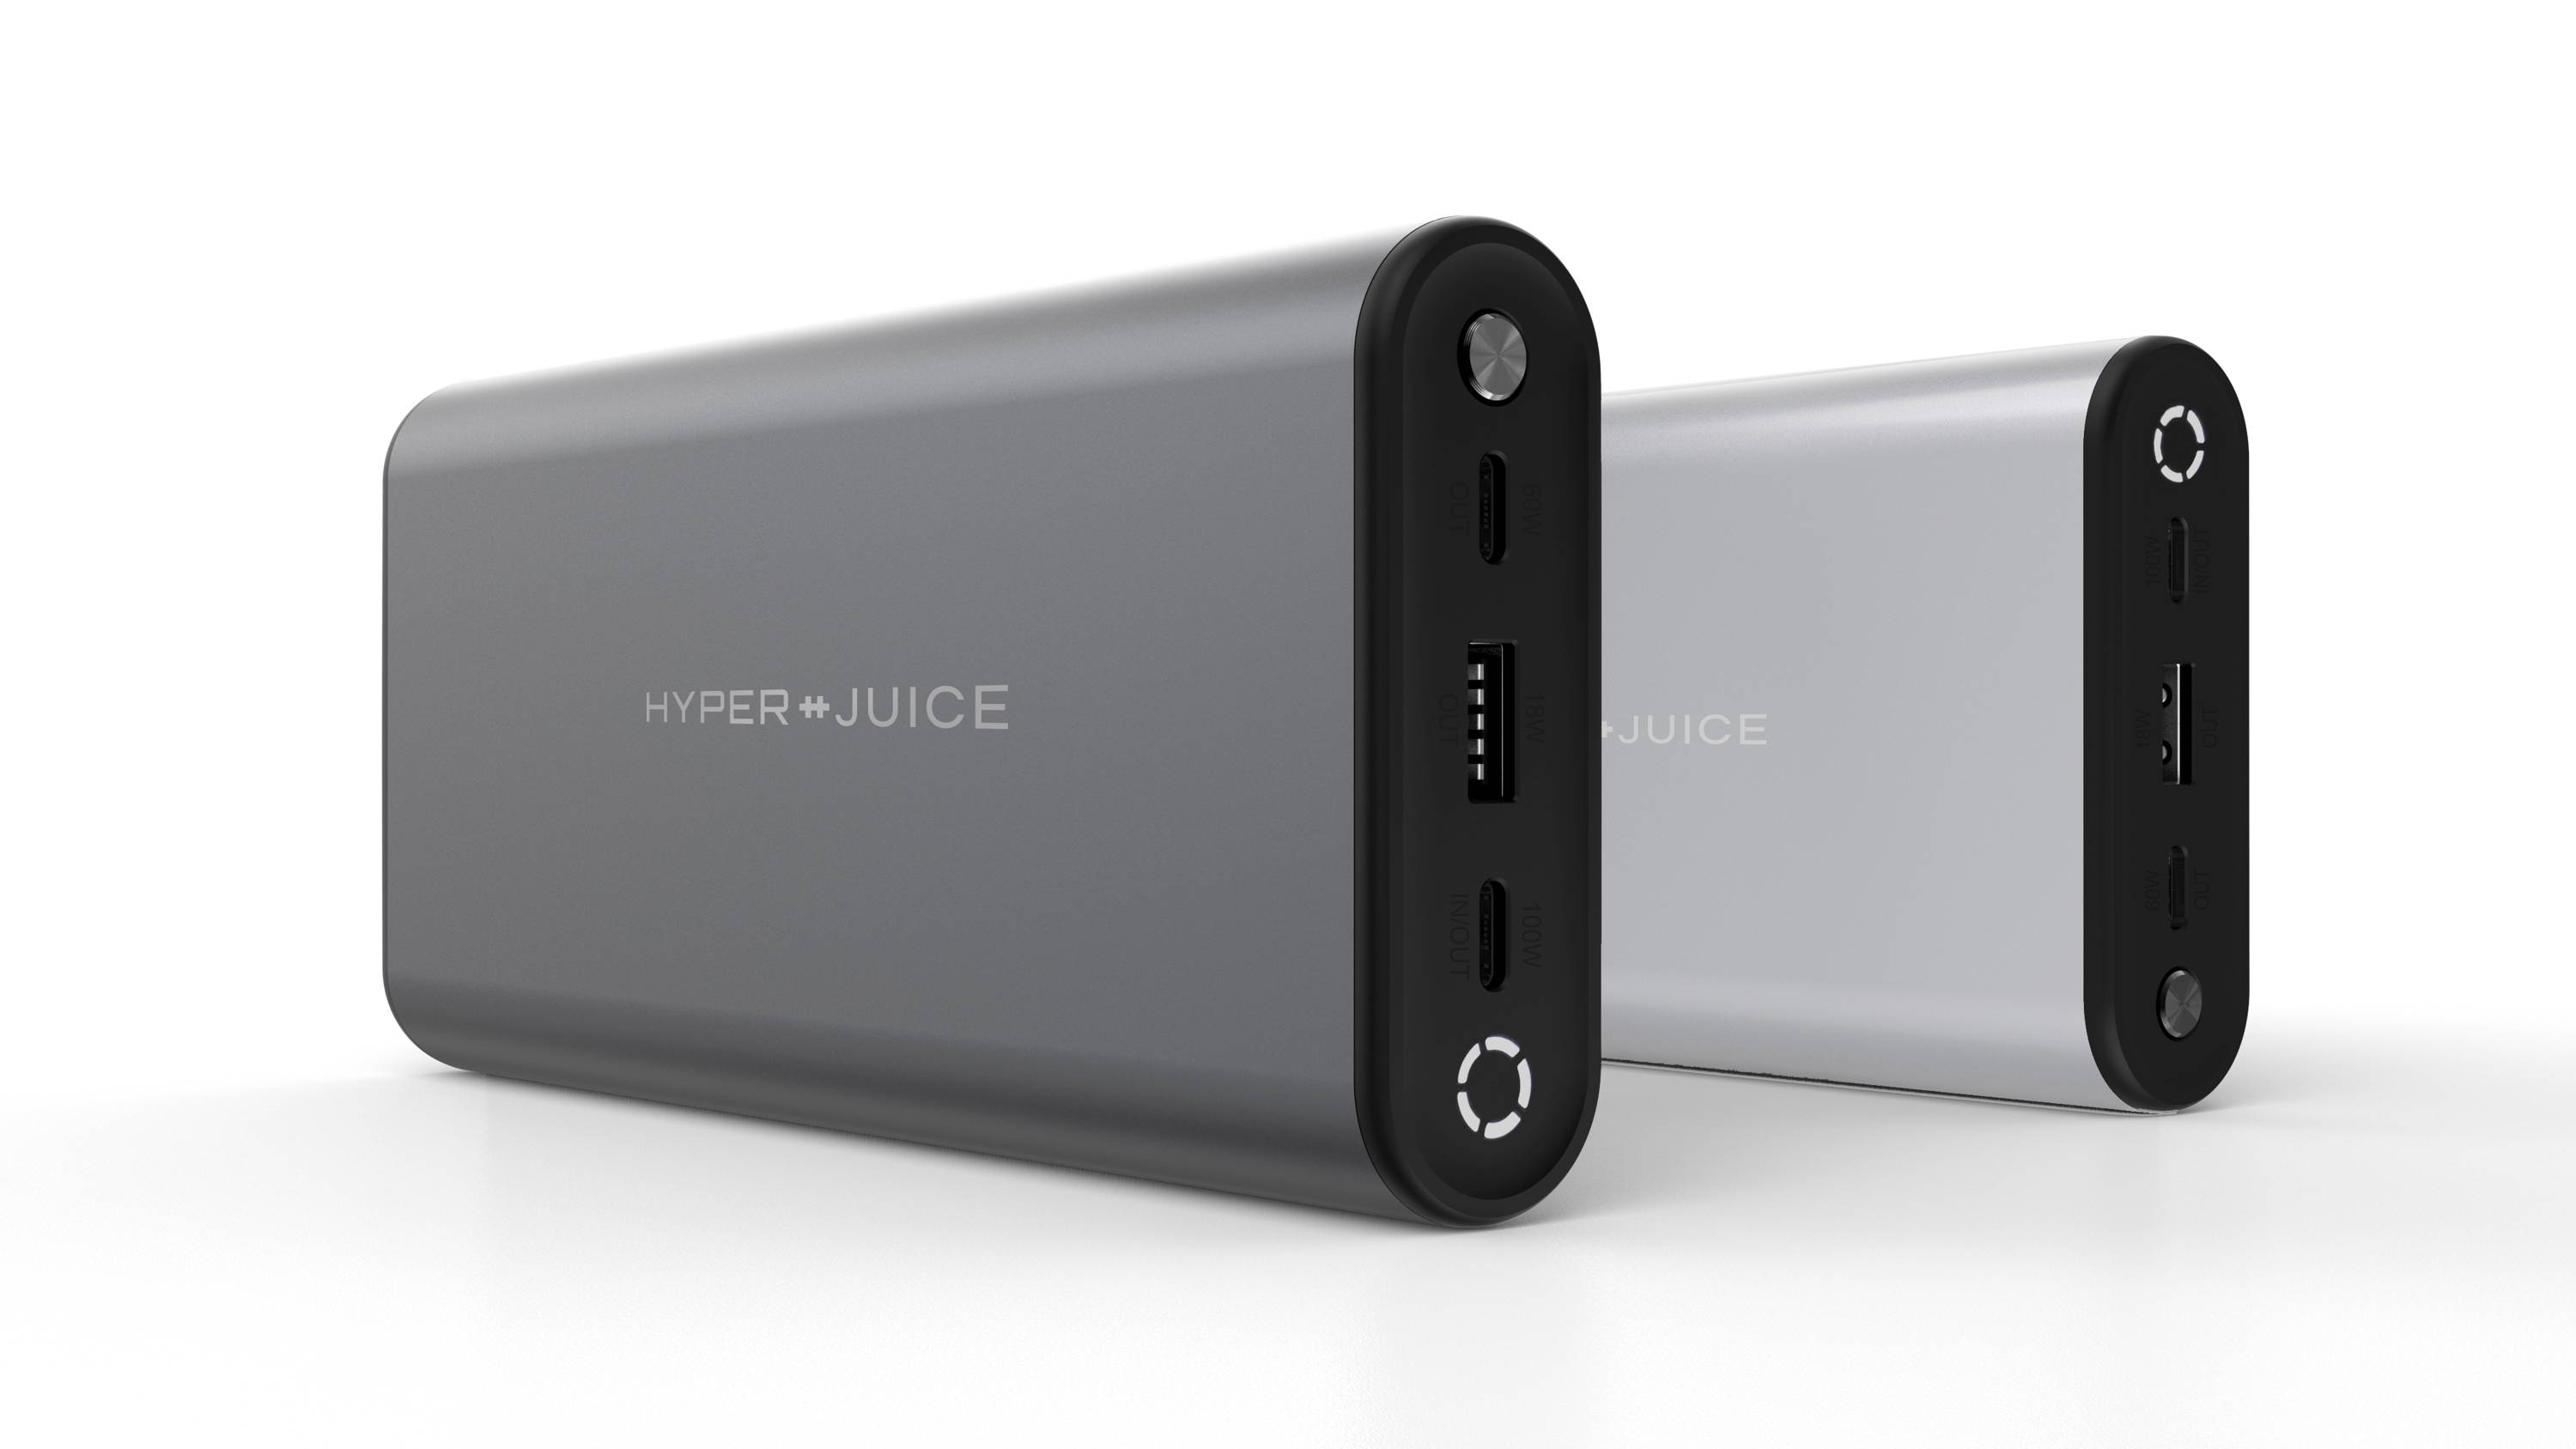 HyperJuice USB-C battery